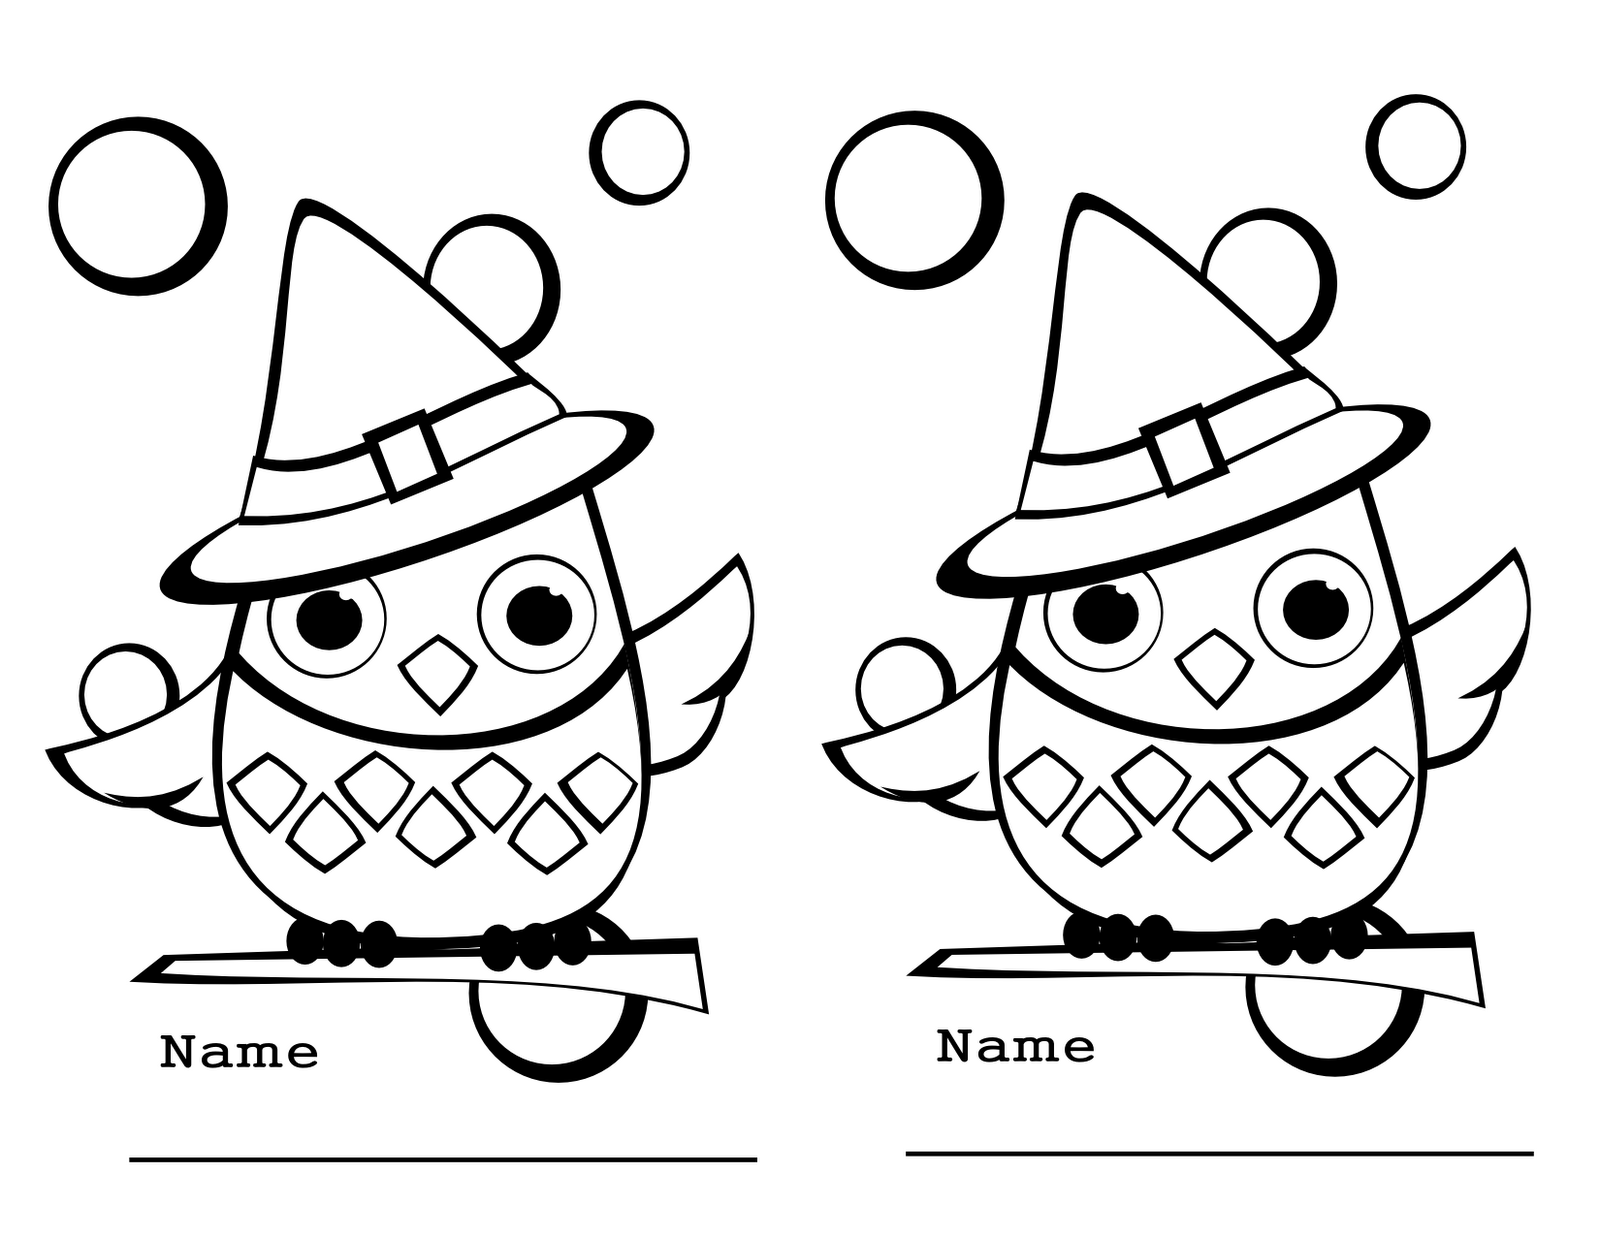 two per page halloween owls to color great to hand out to the kiddos at